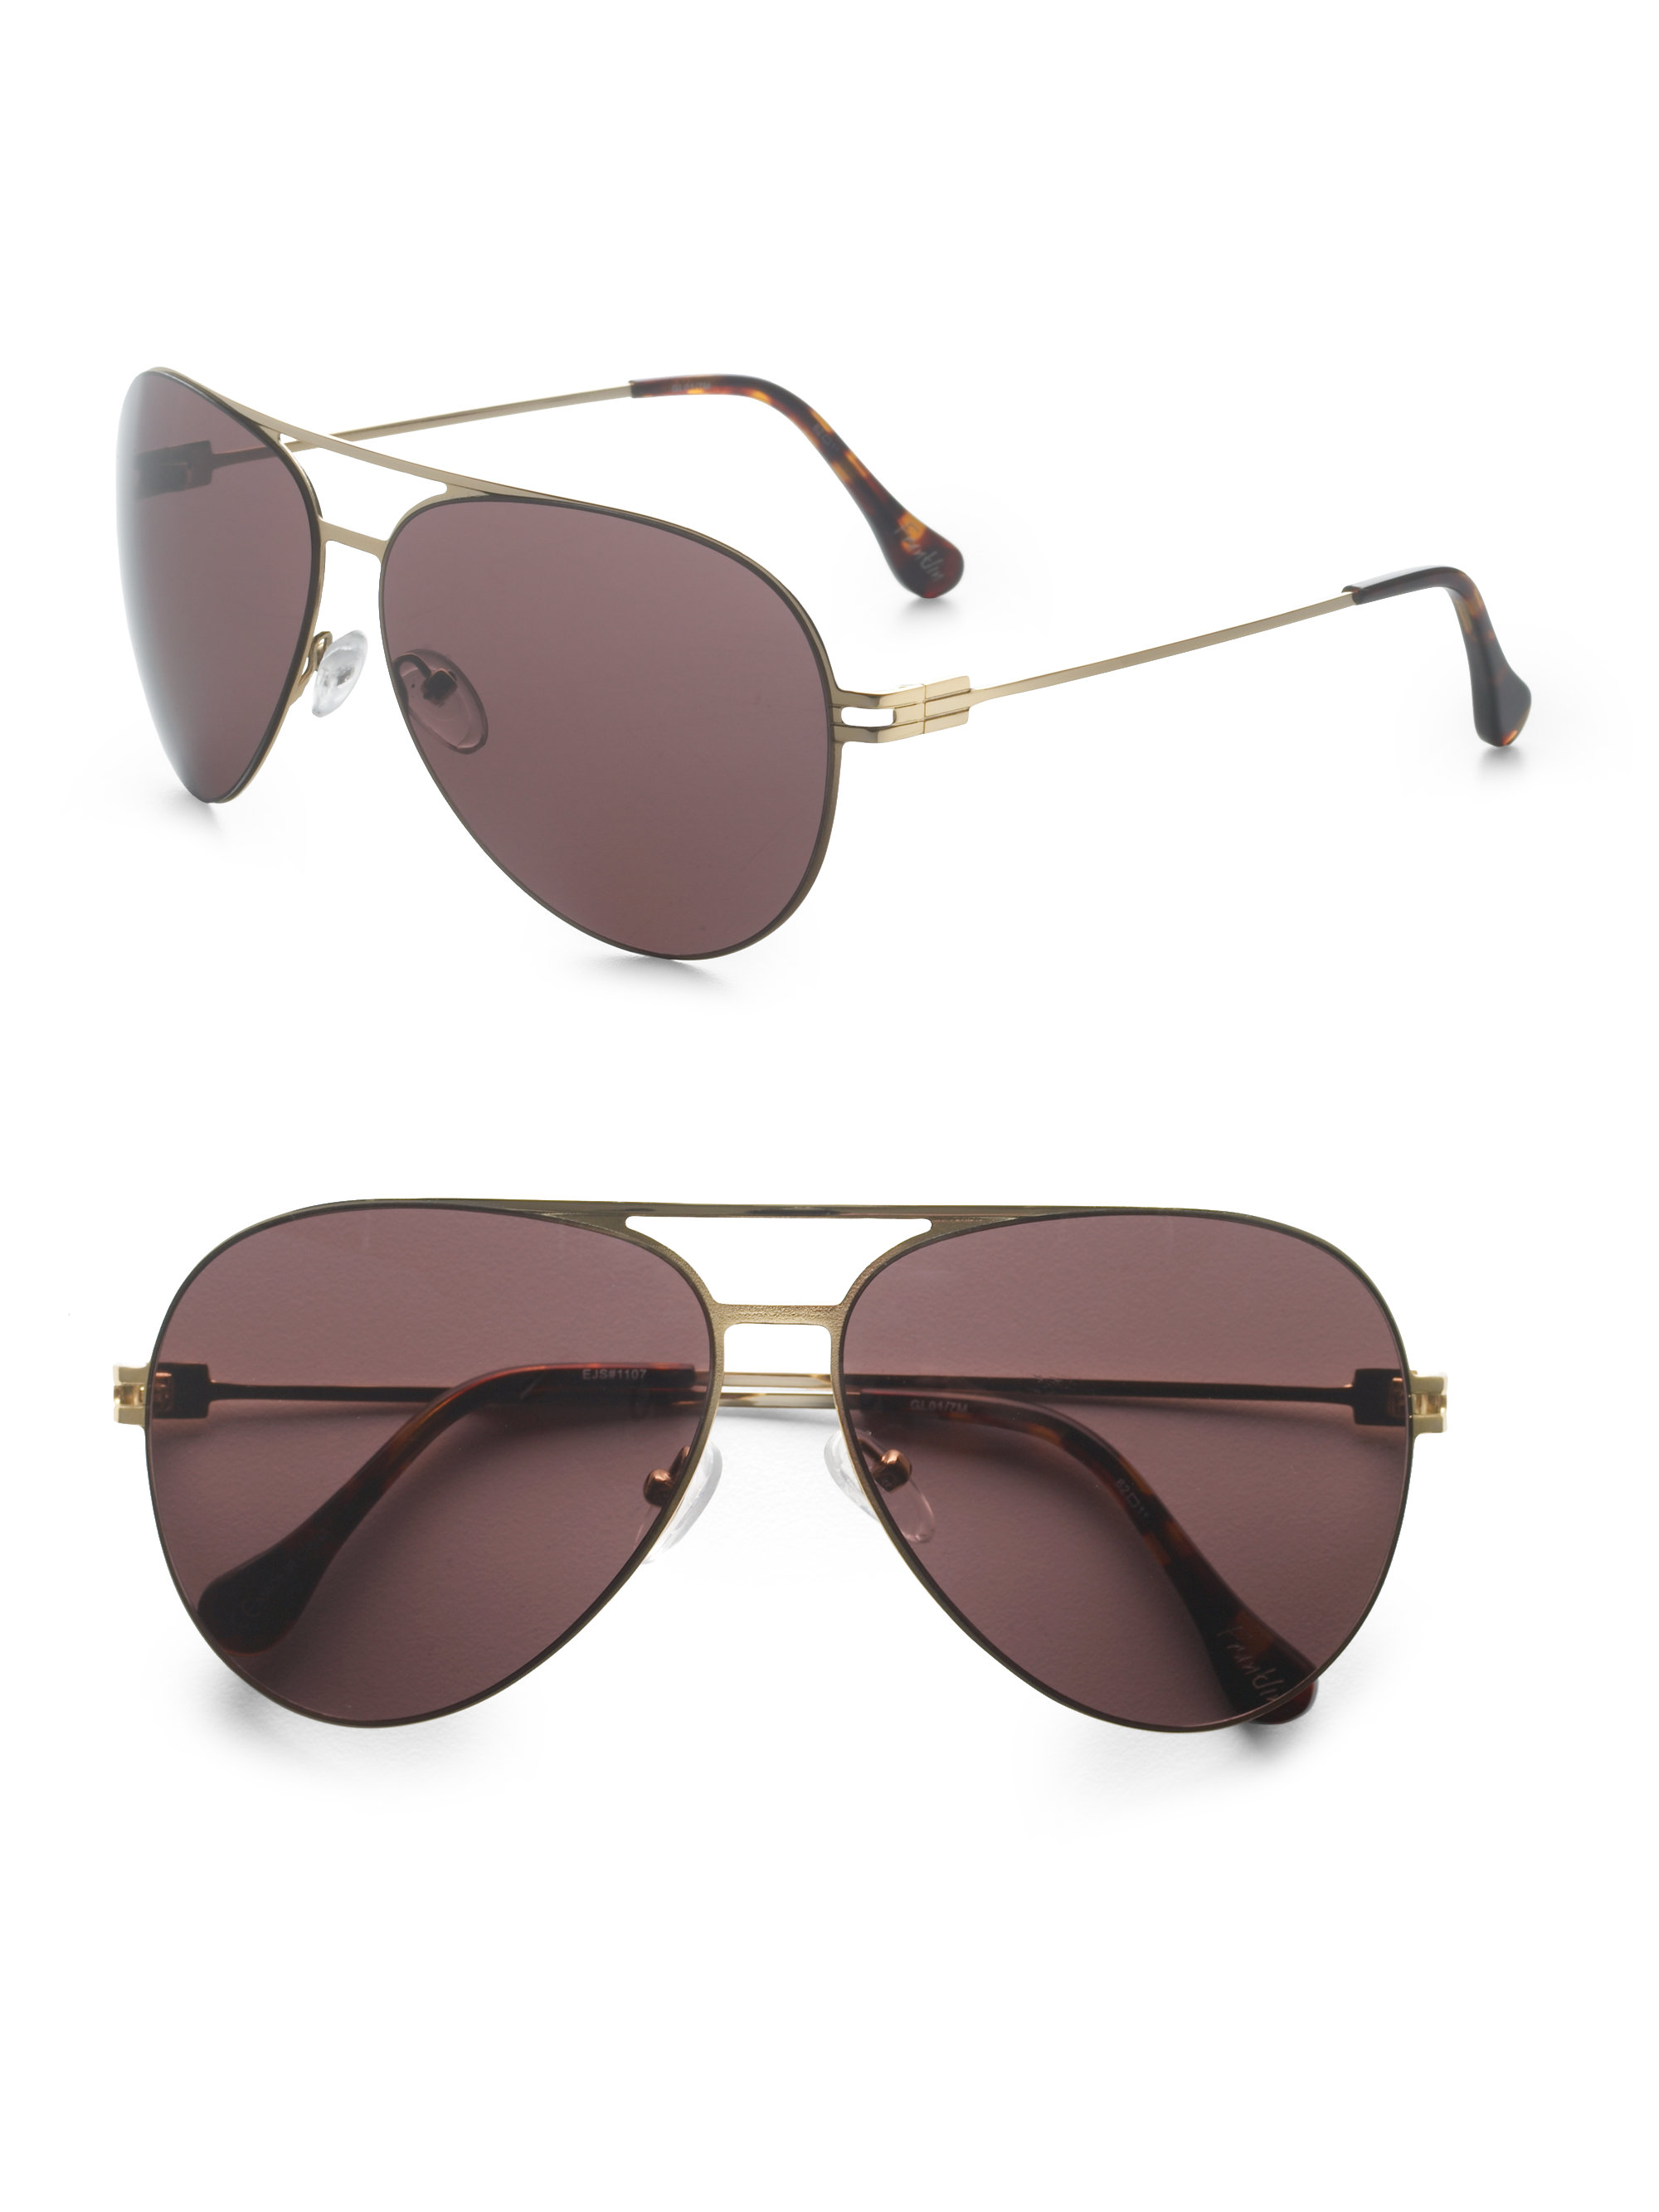 3a3d5813ea7 Lyst - Elizabeth And James Franklin Sunglasses in Brown